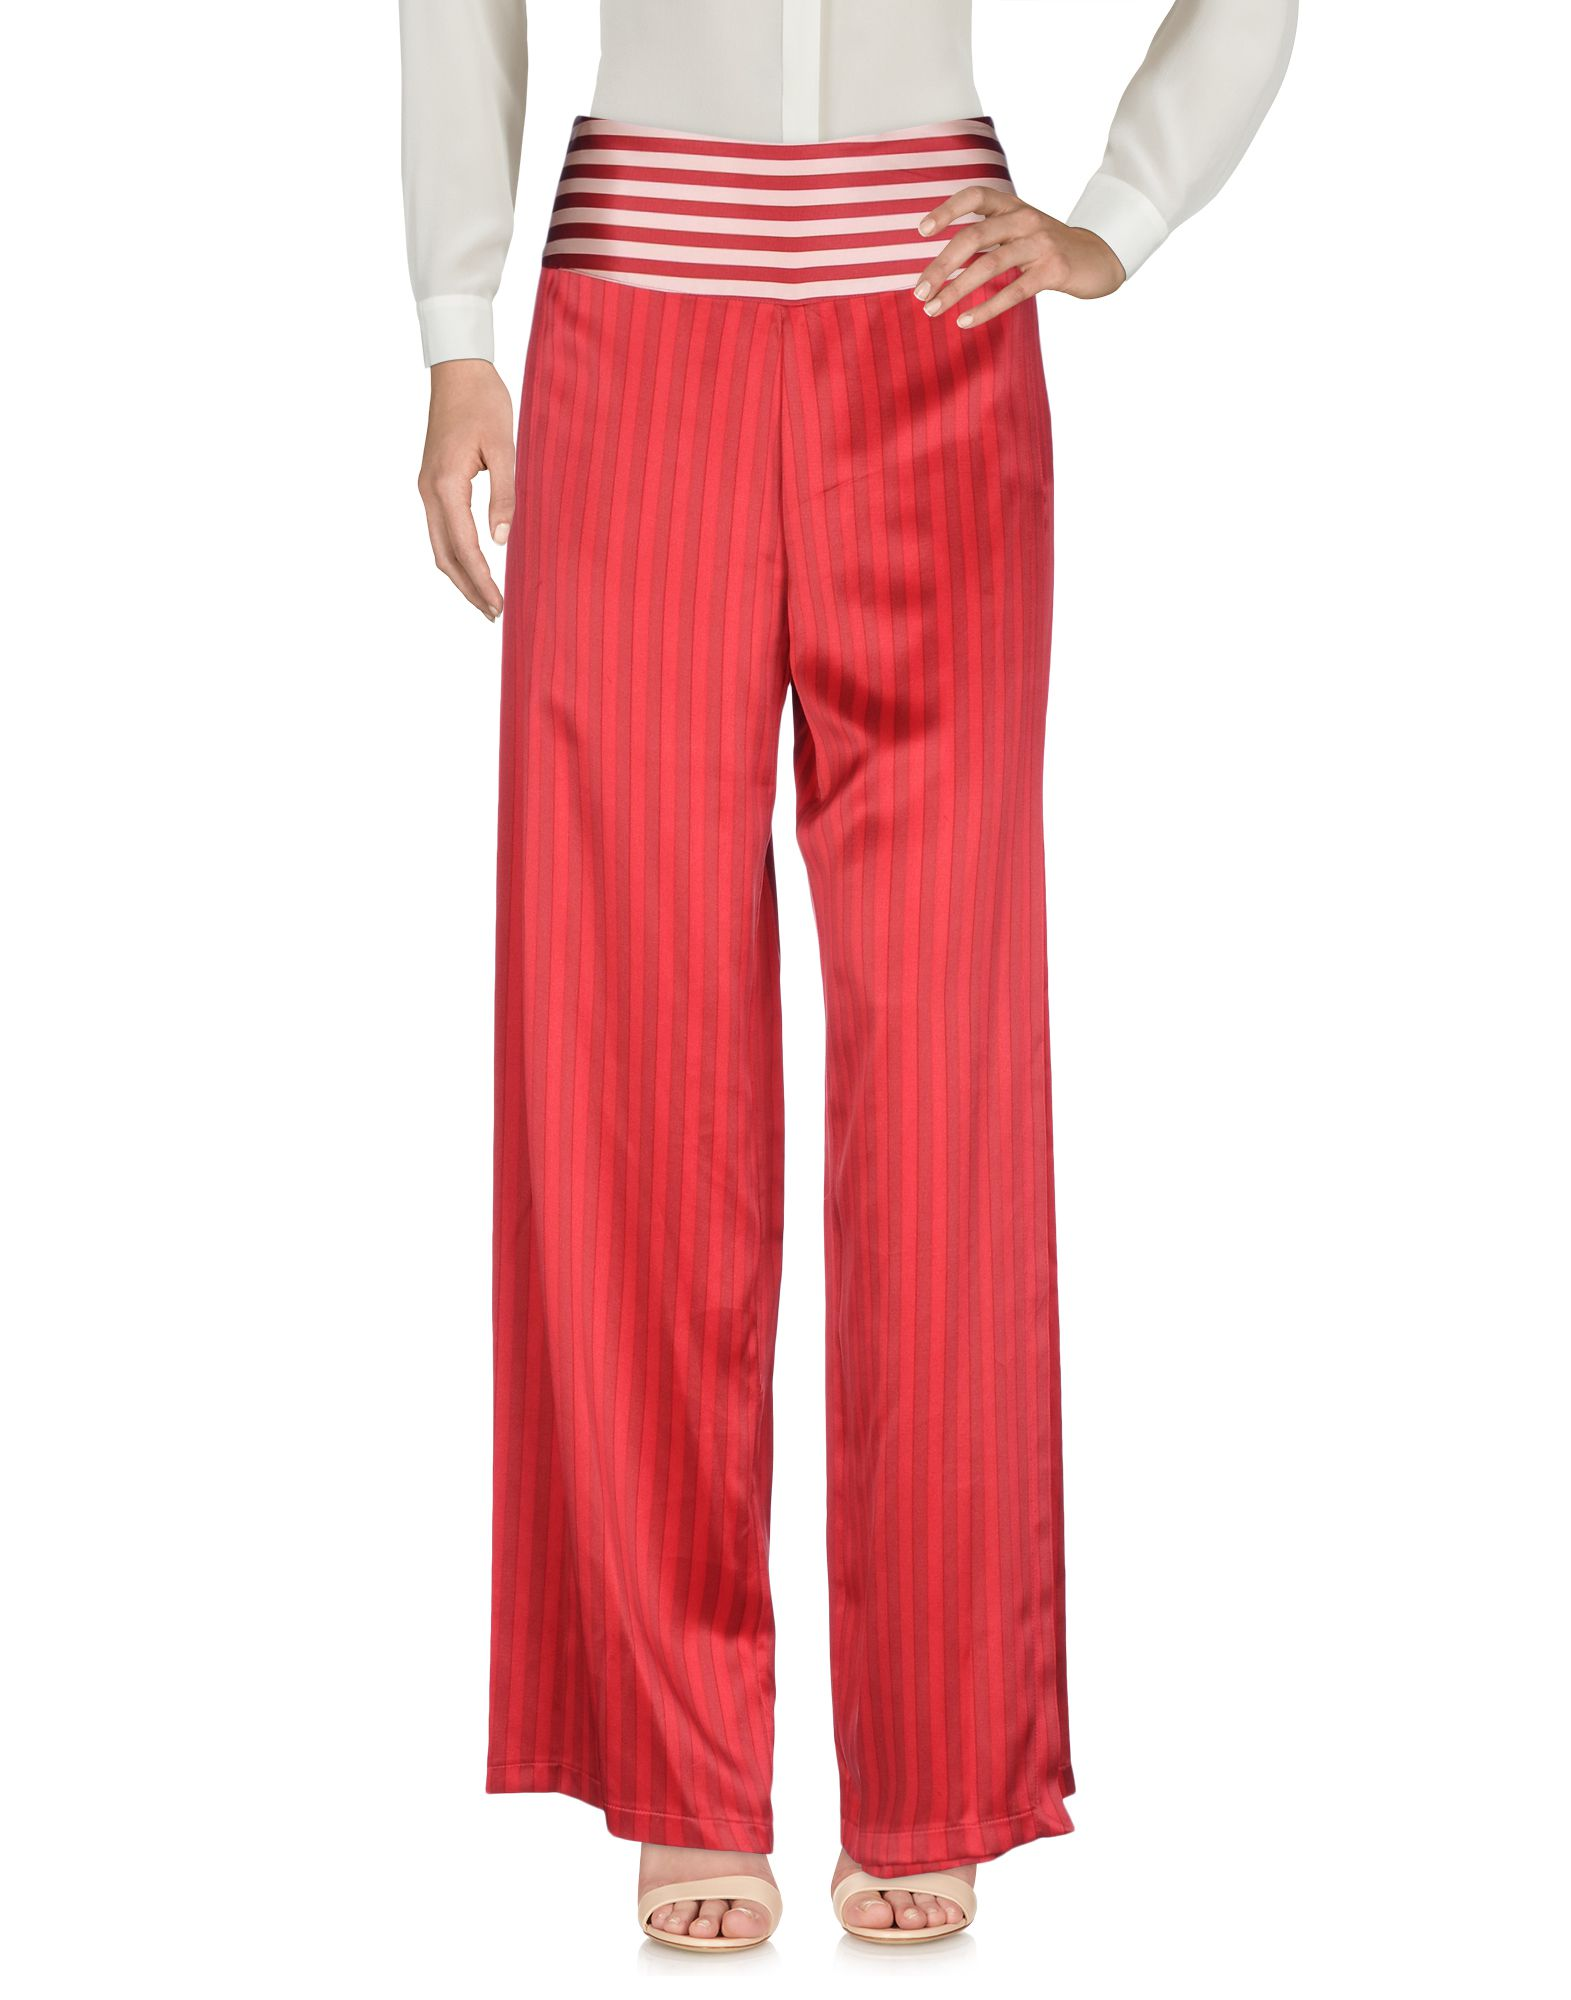 INTROPIA Casual Pants in Red